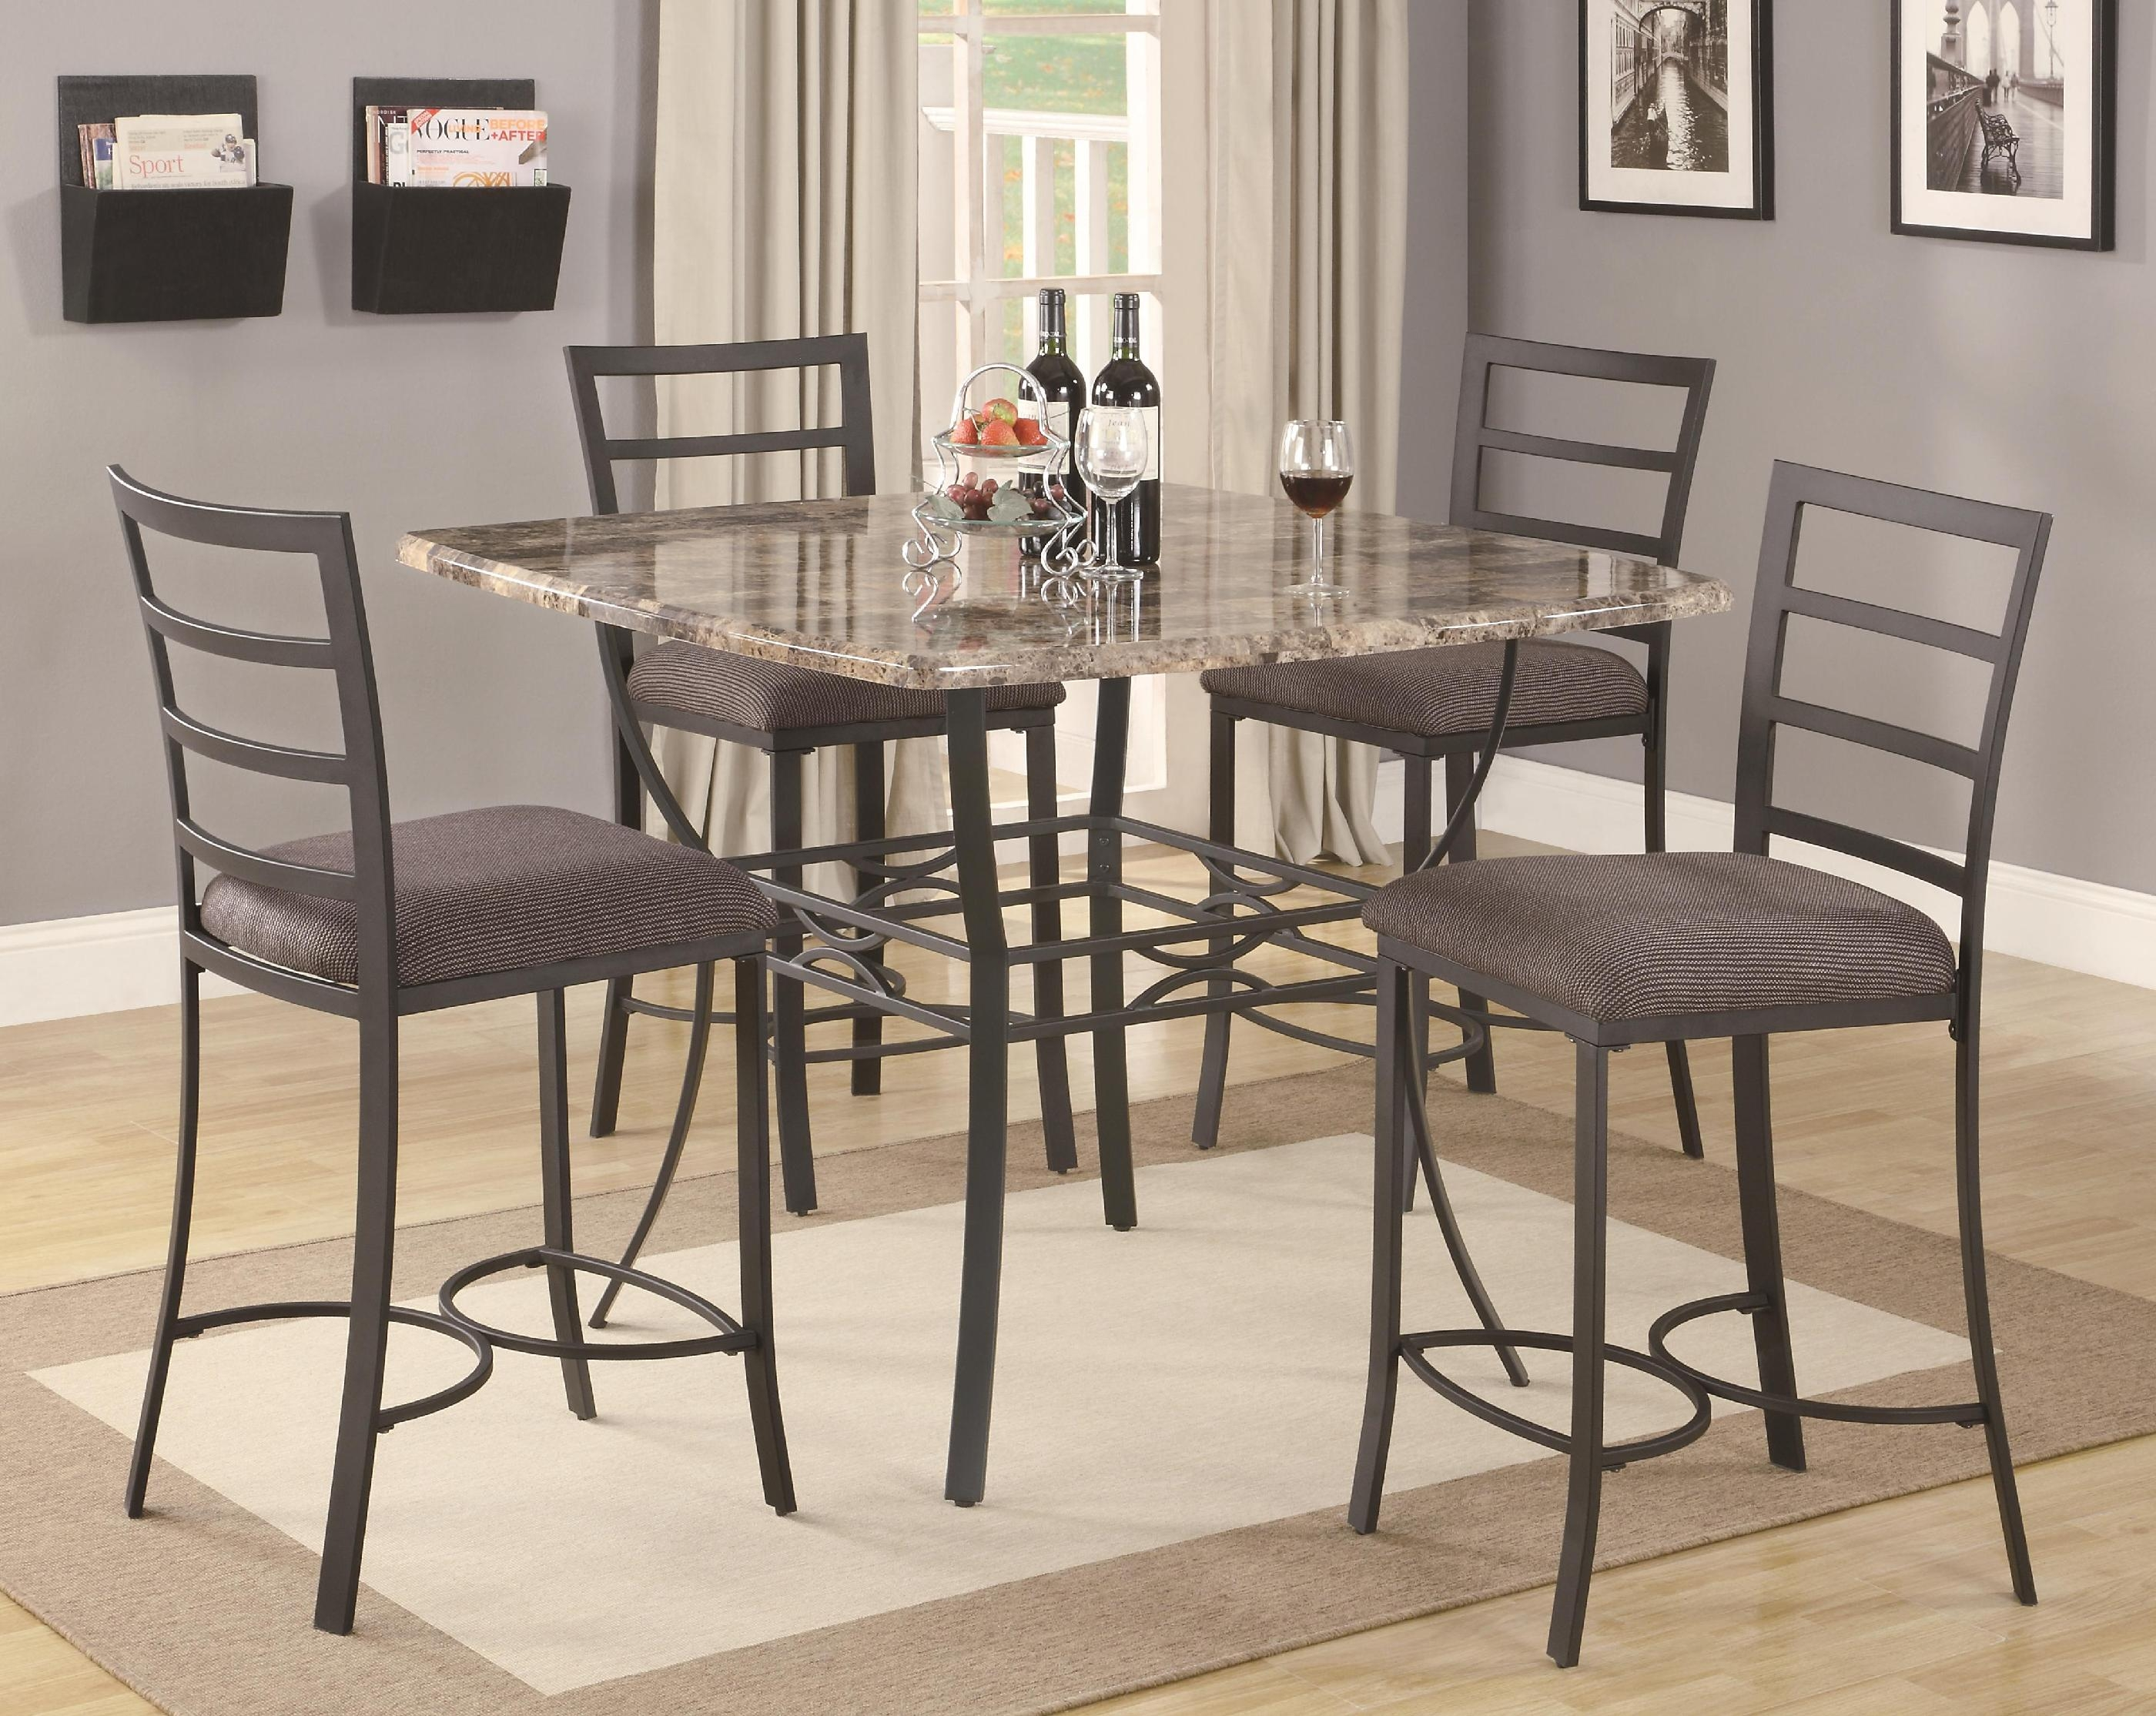 Bistro Kitchen Dining Set